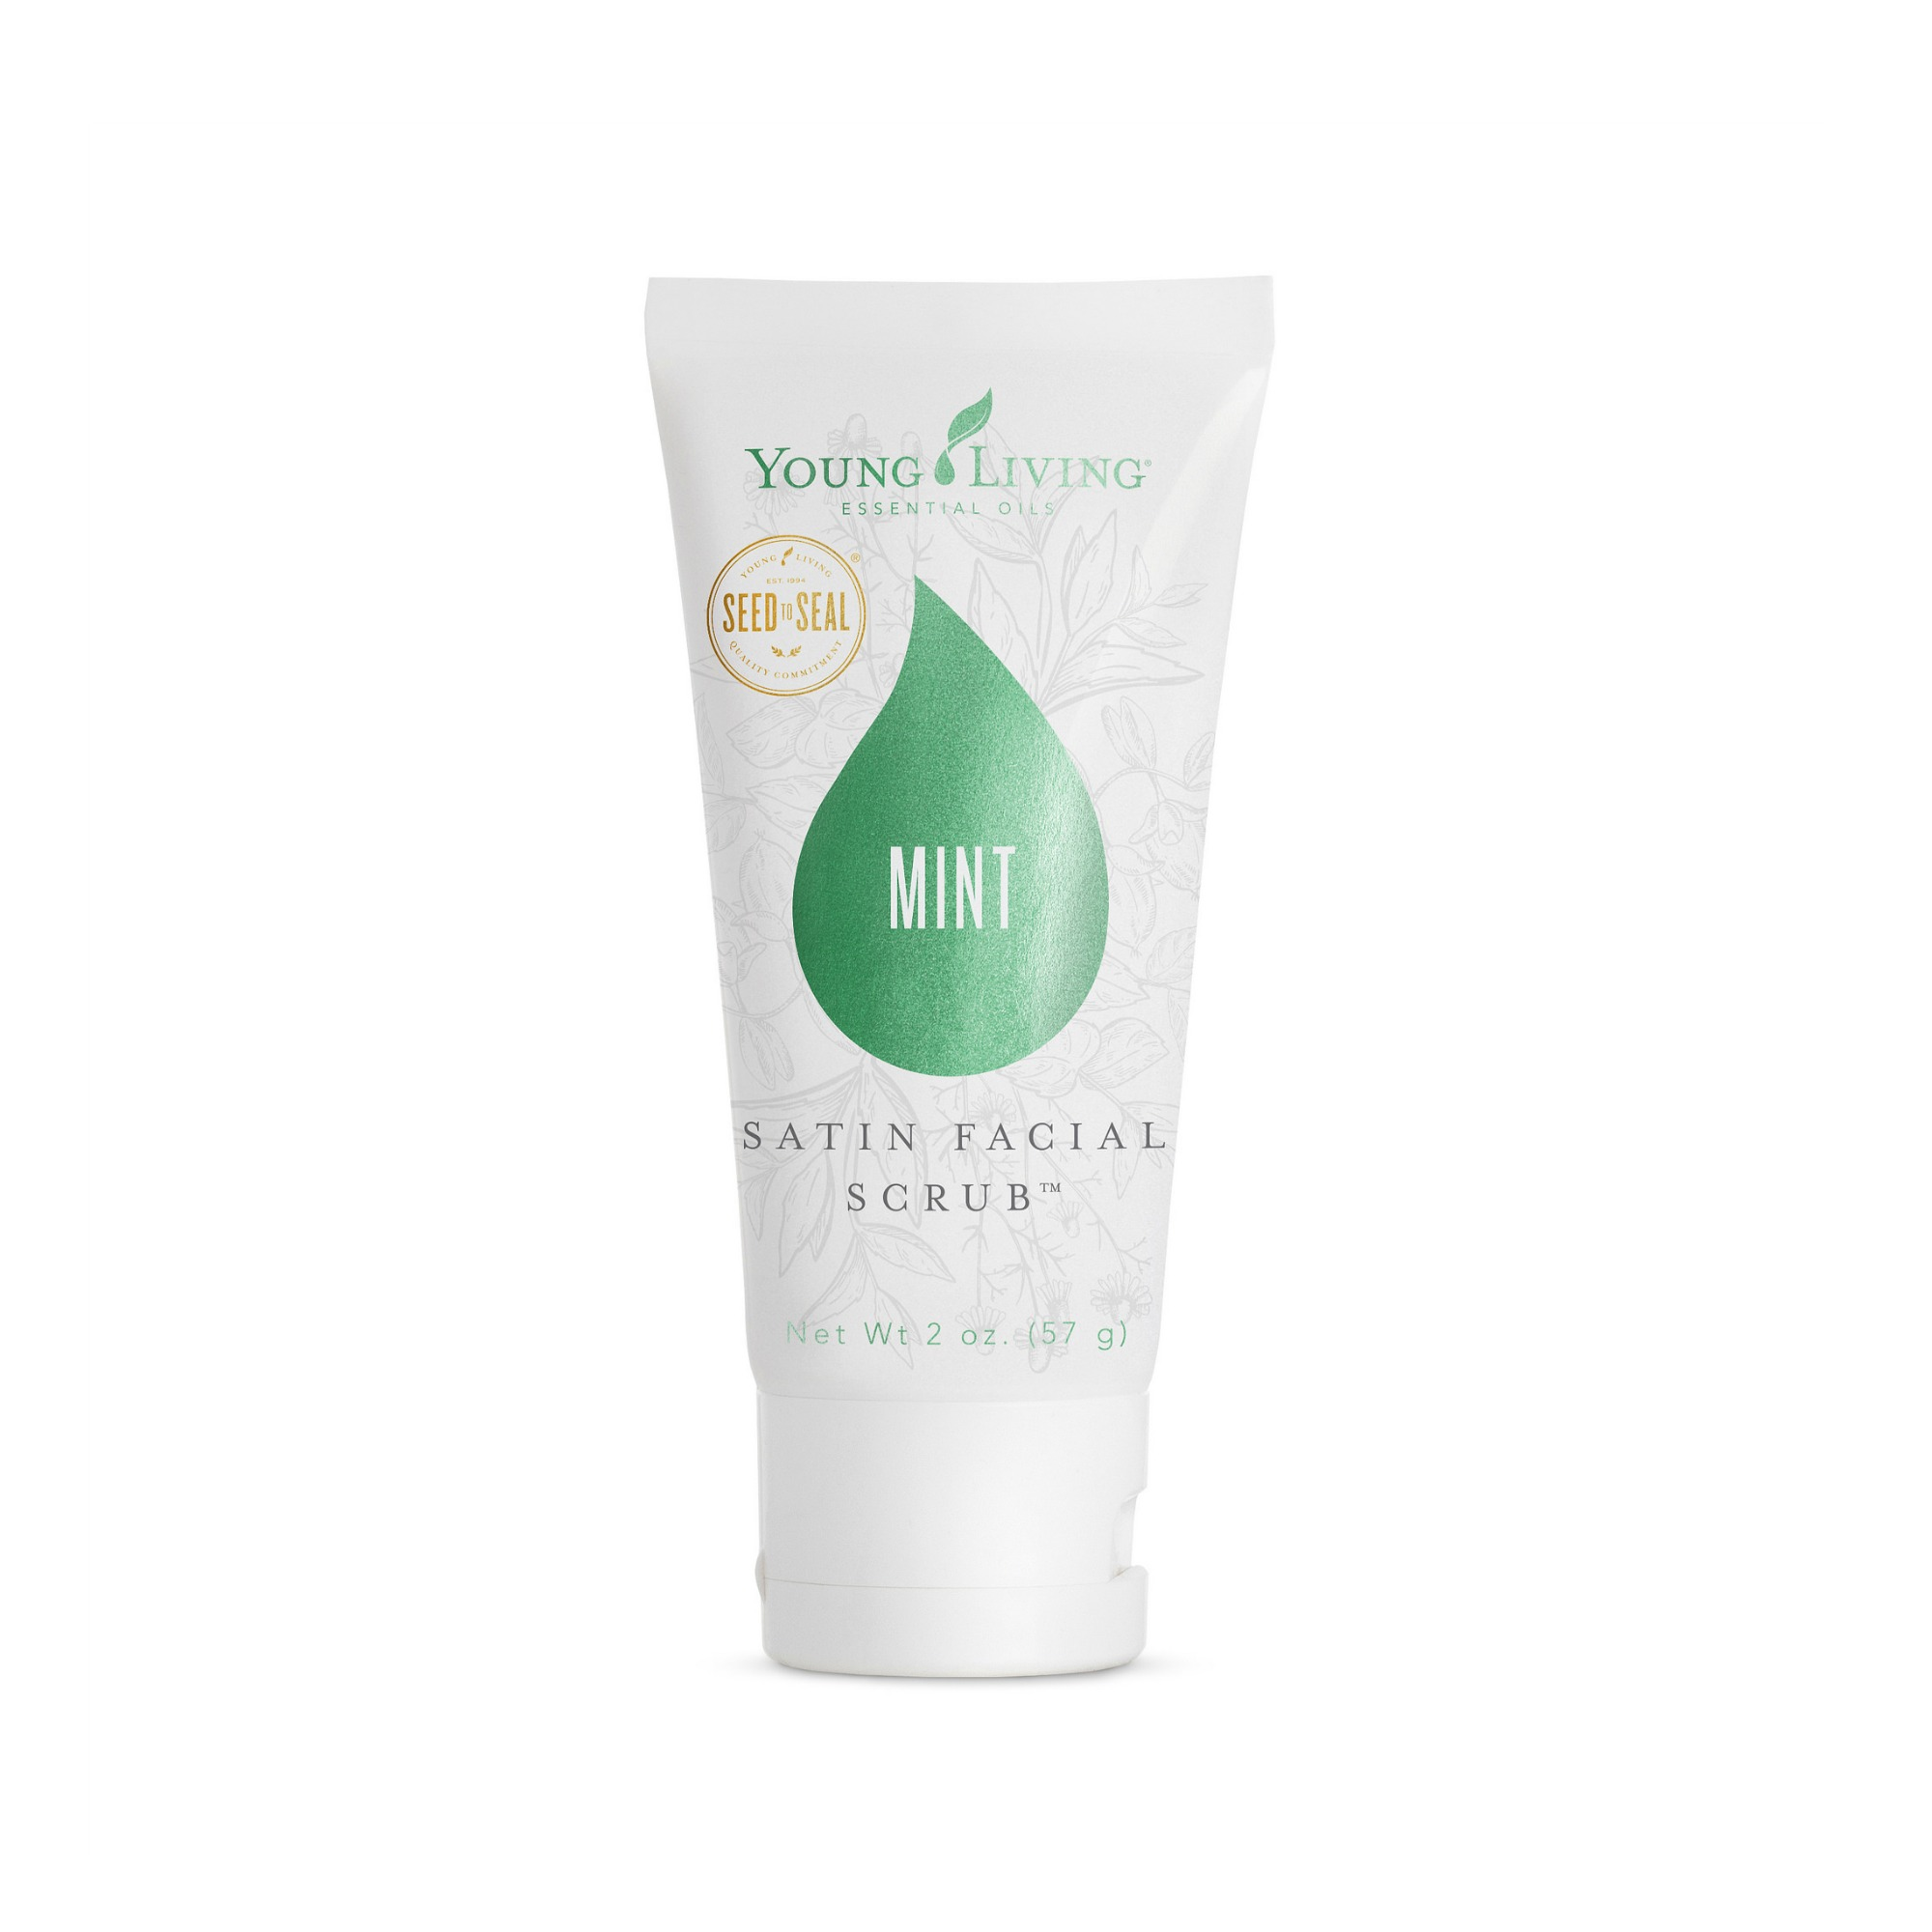 SATIN FACIAL SCRUB - MINT    Polish and prep your skin with this naturally derived exfoliator! This is the perfect step to take before going through your skin care routine. Made with apricot seed powder, this product gently lifts and removes dry, dead skin cells to reveal bright and even-looking skin - and if you have oily skin, it removes buildup and unwanted residue. Plus, it has pure Peppermint essential oil for a minty scent and tingly fresh feel.   Click here   to learn more about this product.